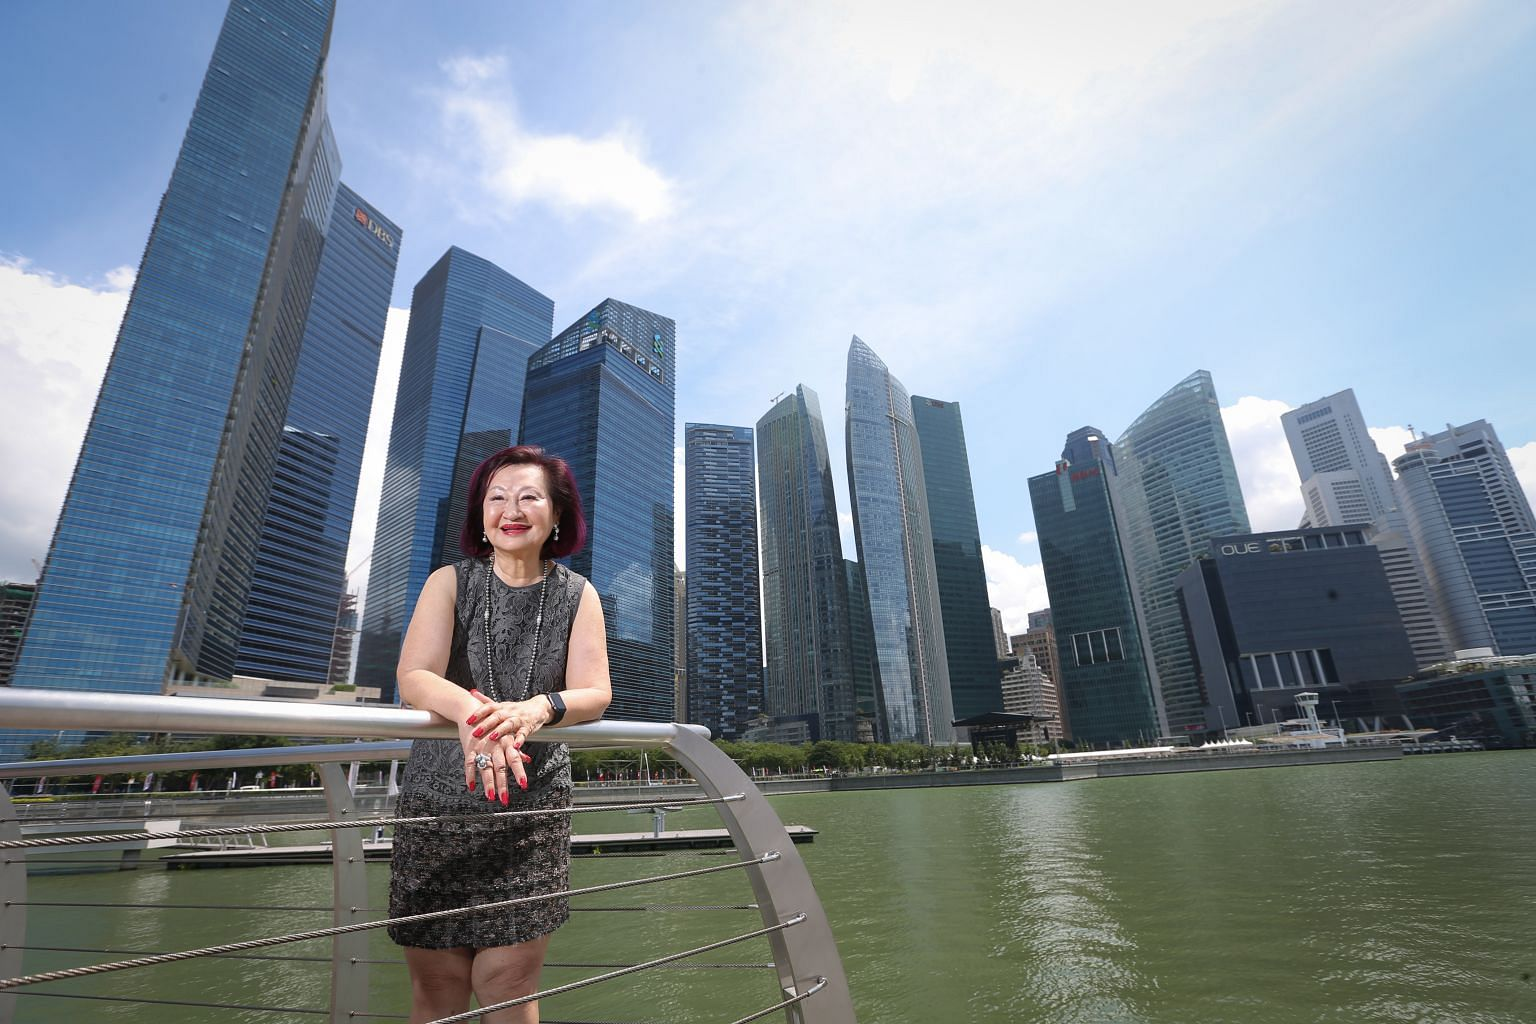 Mrs Elizabeth Sam, 76, was given the task of promoting the Asian Dollar Market and other financial markets, such as the foreign exchange market. From 1971 to 1981, she met many offshore bankers and laid out Singapore's advantages - including its good